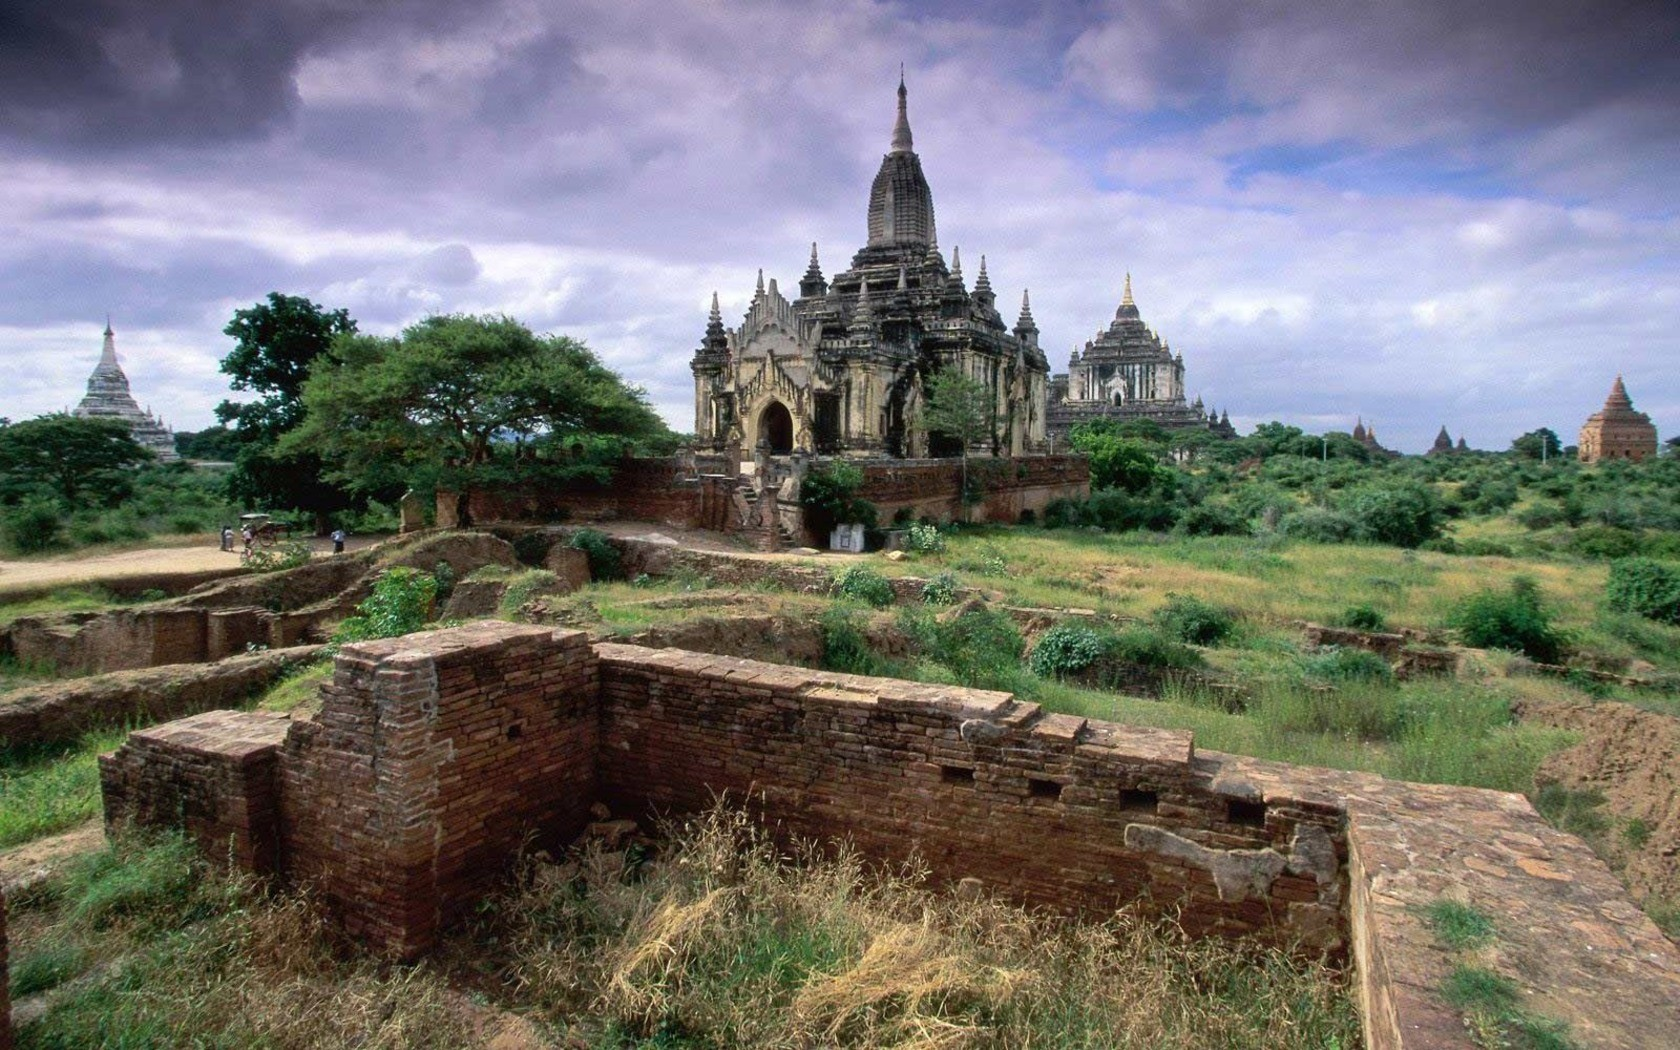 landscapes-nature-ruins-world-architecture-temple-x-wallpaper-wp427035-1